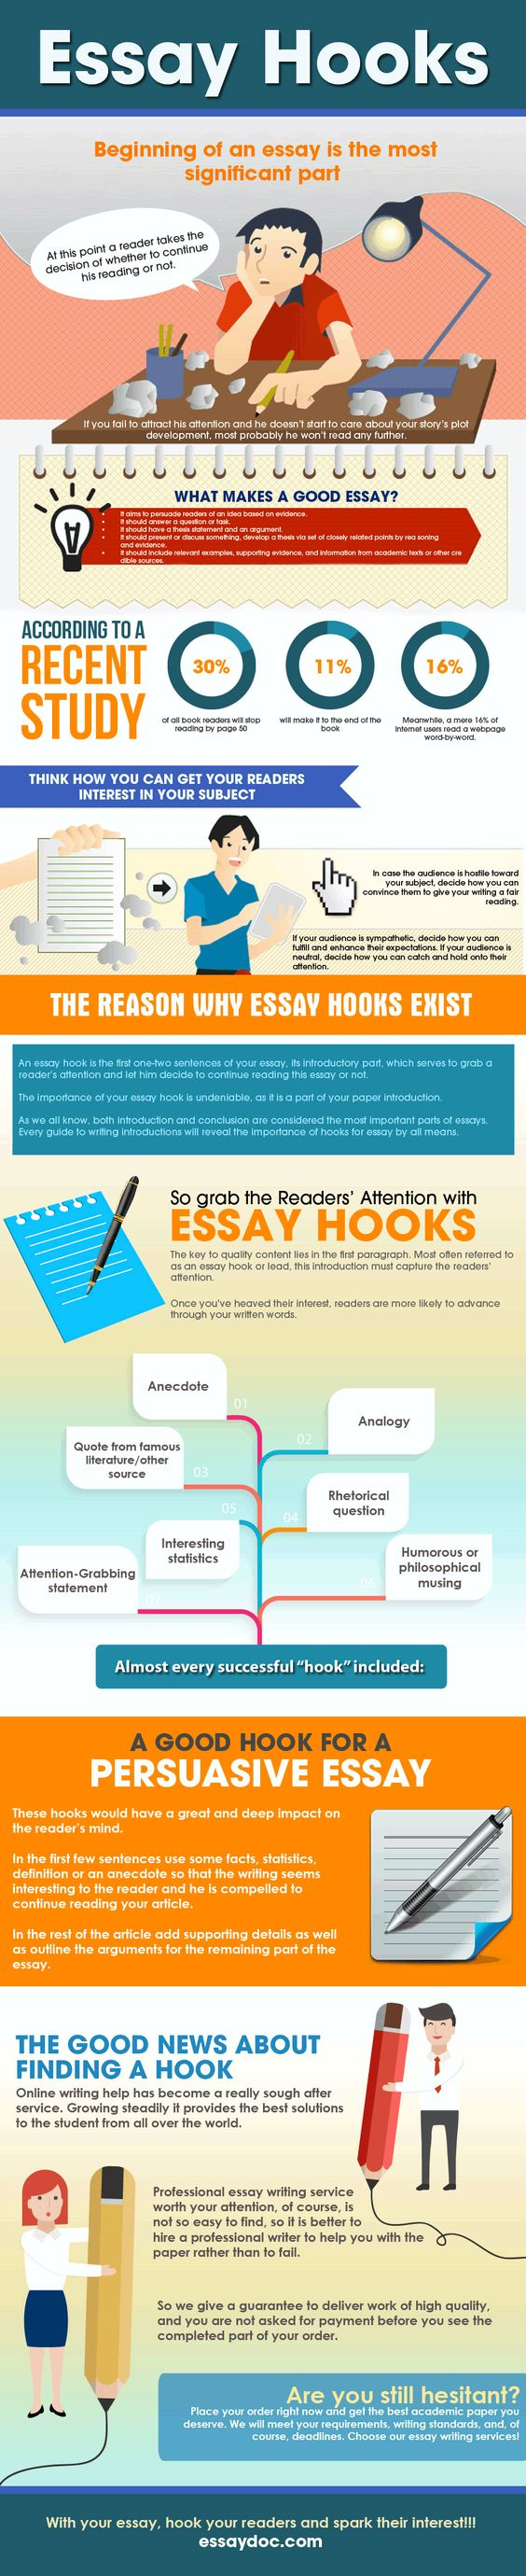 video how to write college admissions essay educational video  essay hooks infographic